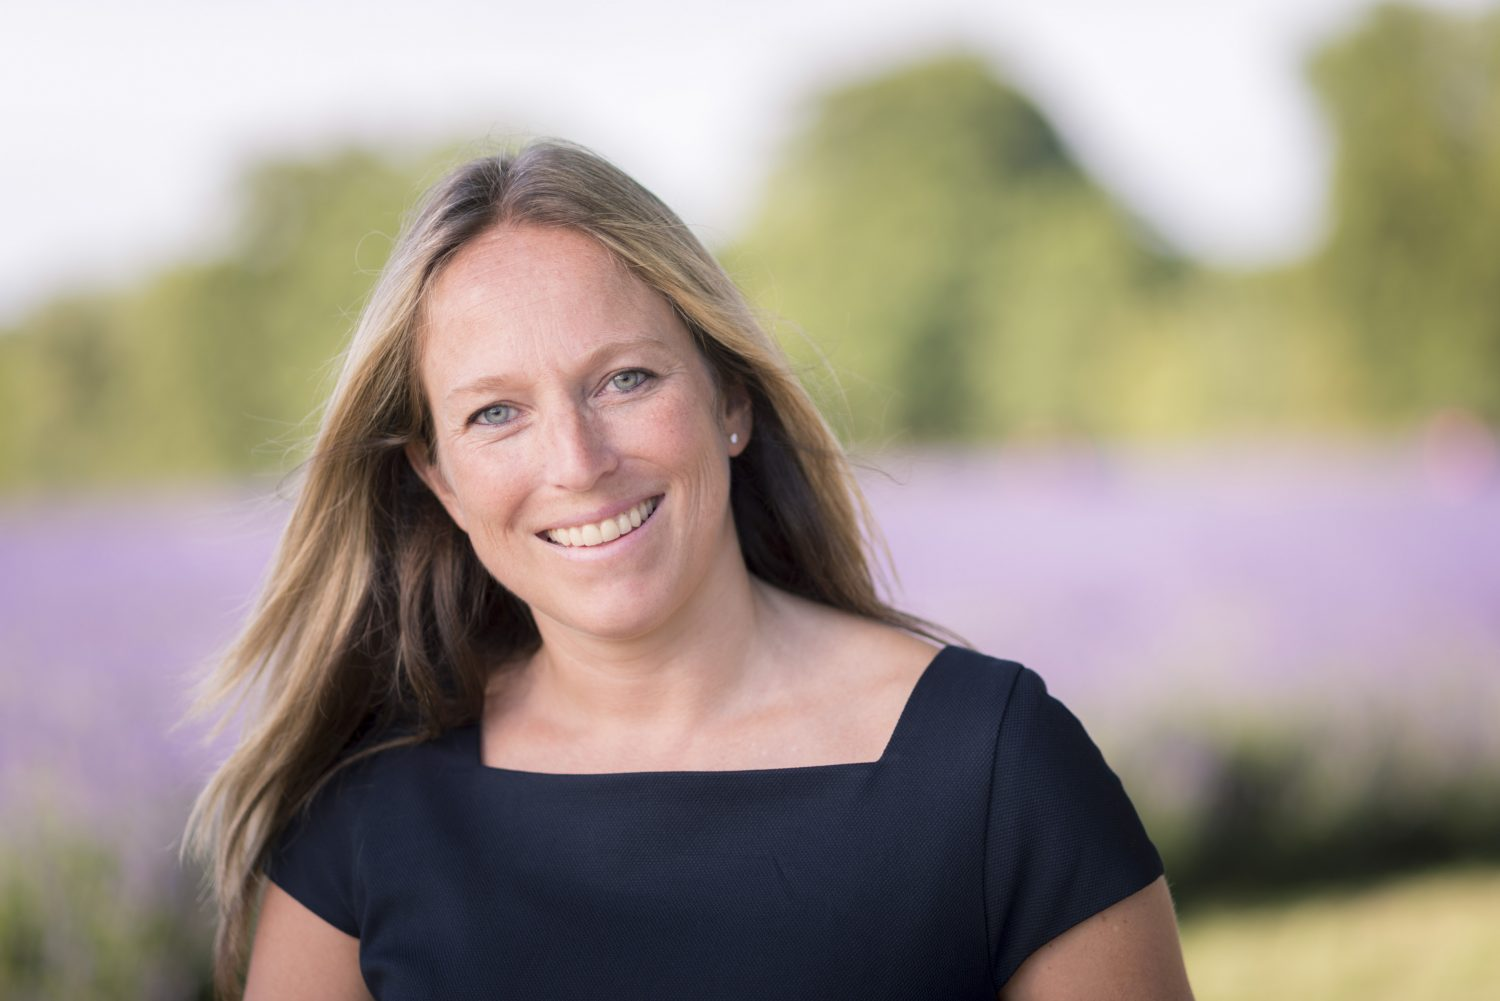 Vicky Ellis, Head of Banstead Prep School